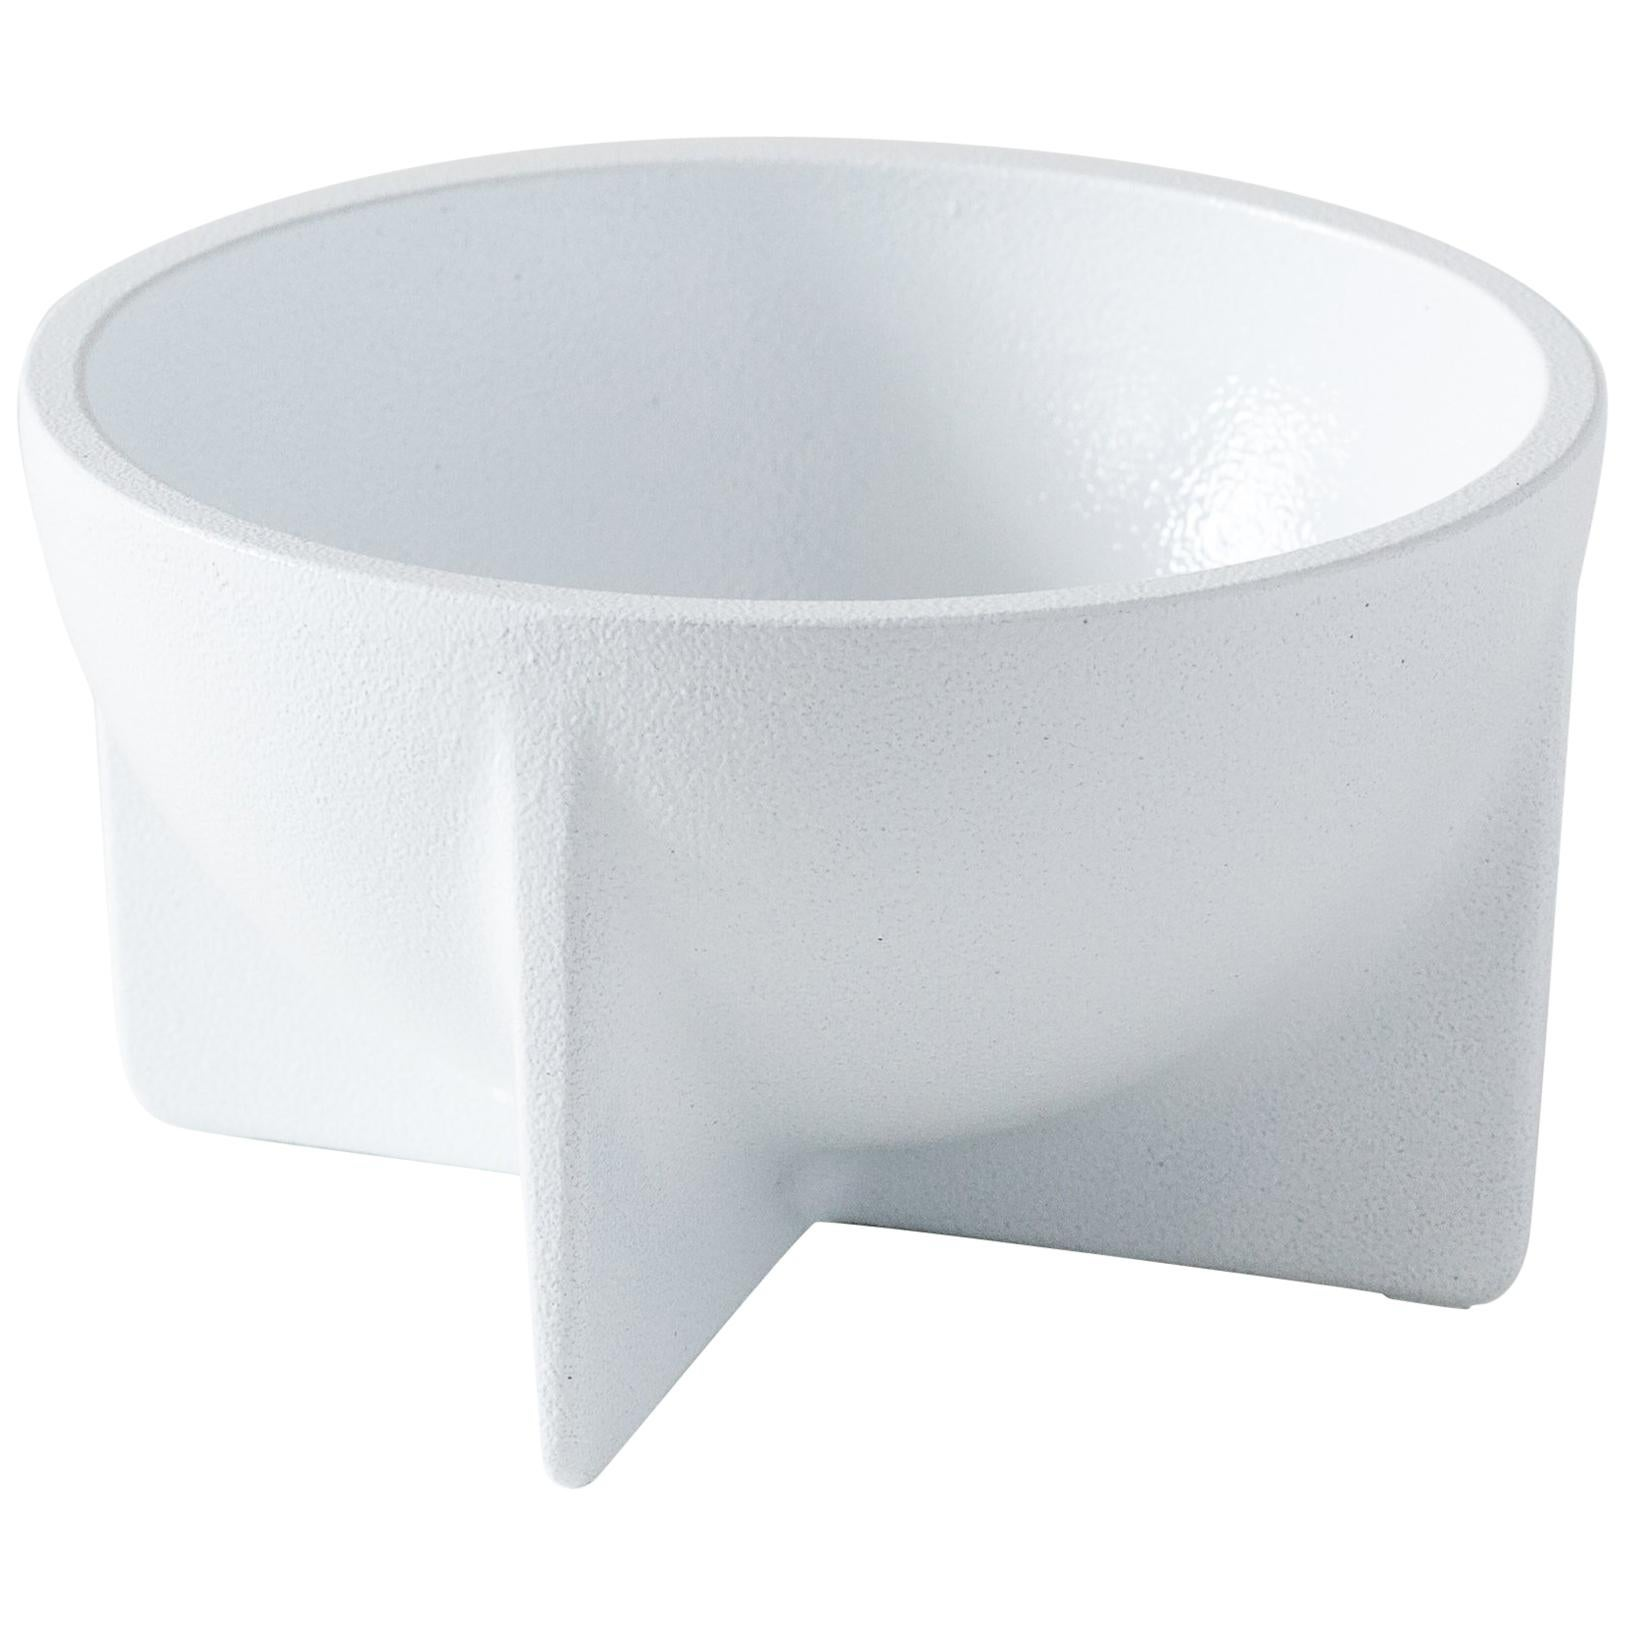 Small Contemporary White Standing Bowl by Fort Standard, in Stock